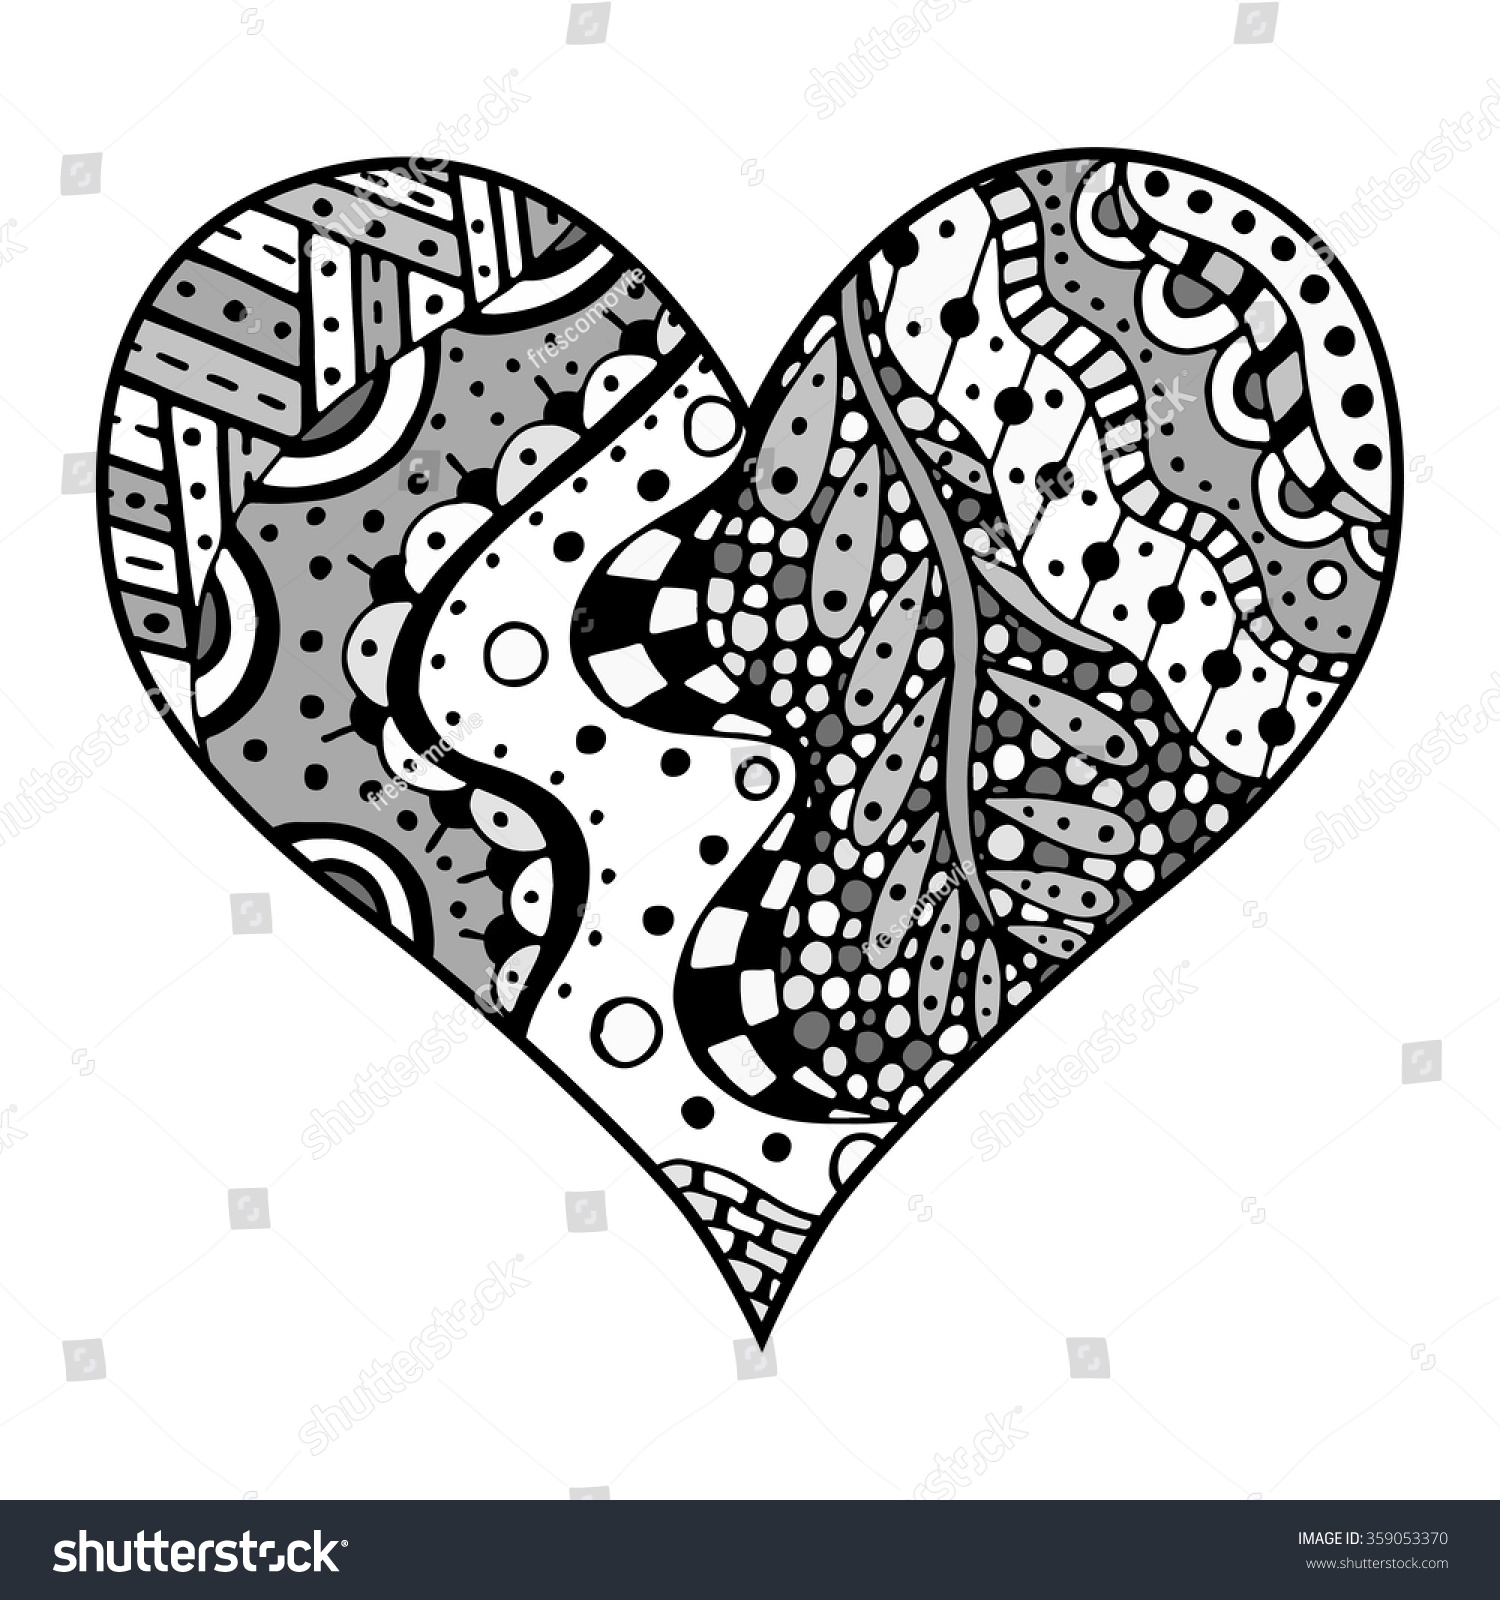 Heart Zentangle Coloring Pages Best Of Zentangle Coloring Page ... | 1600x1500